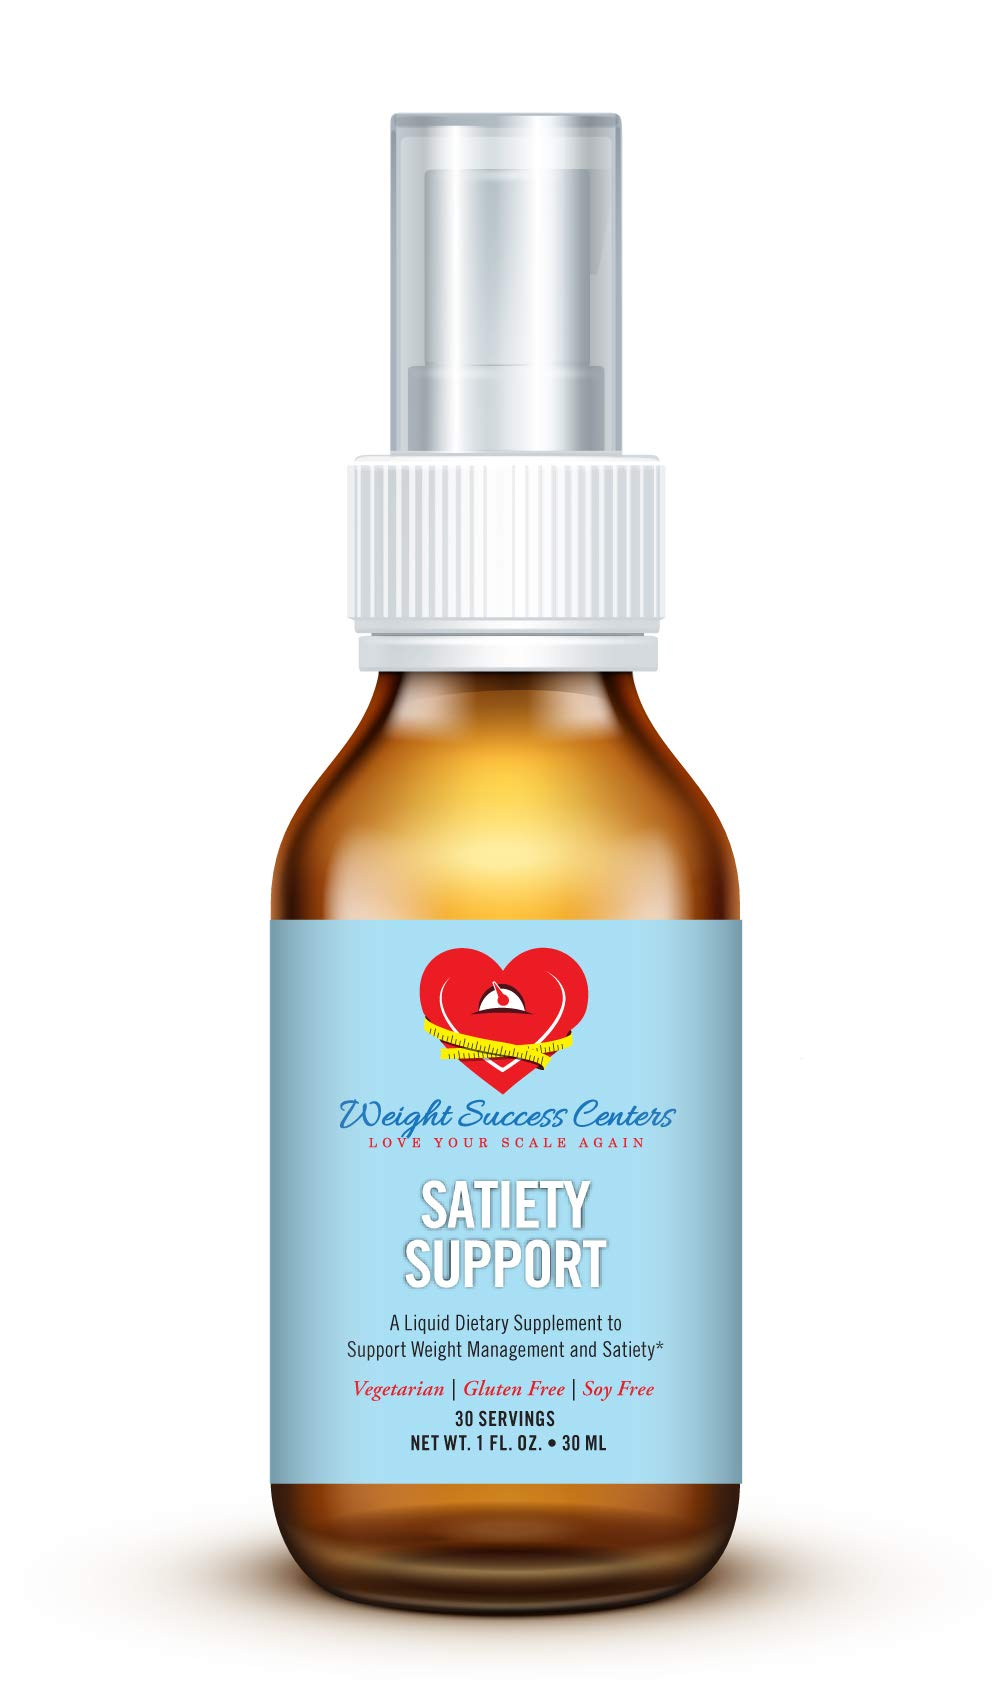 Satiety Support Hunger Control Spray - Natural Appetite Suppressant - Made with Dyglofit - All-Natural Hunger Suppressant - Suitable for Vegetarians - Gluten and Soy Free - 30 Servings by Weight Success Centers, LLC